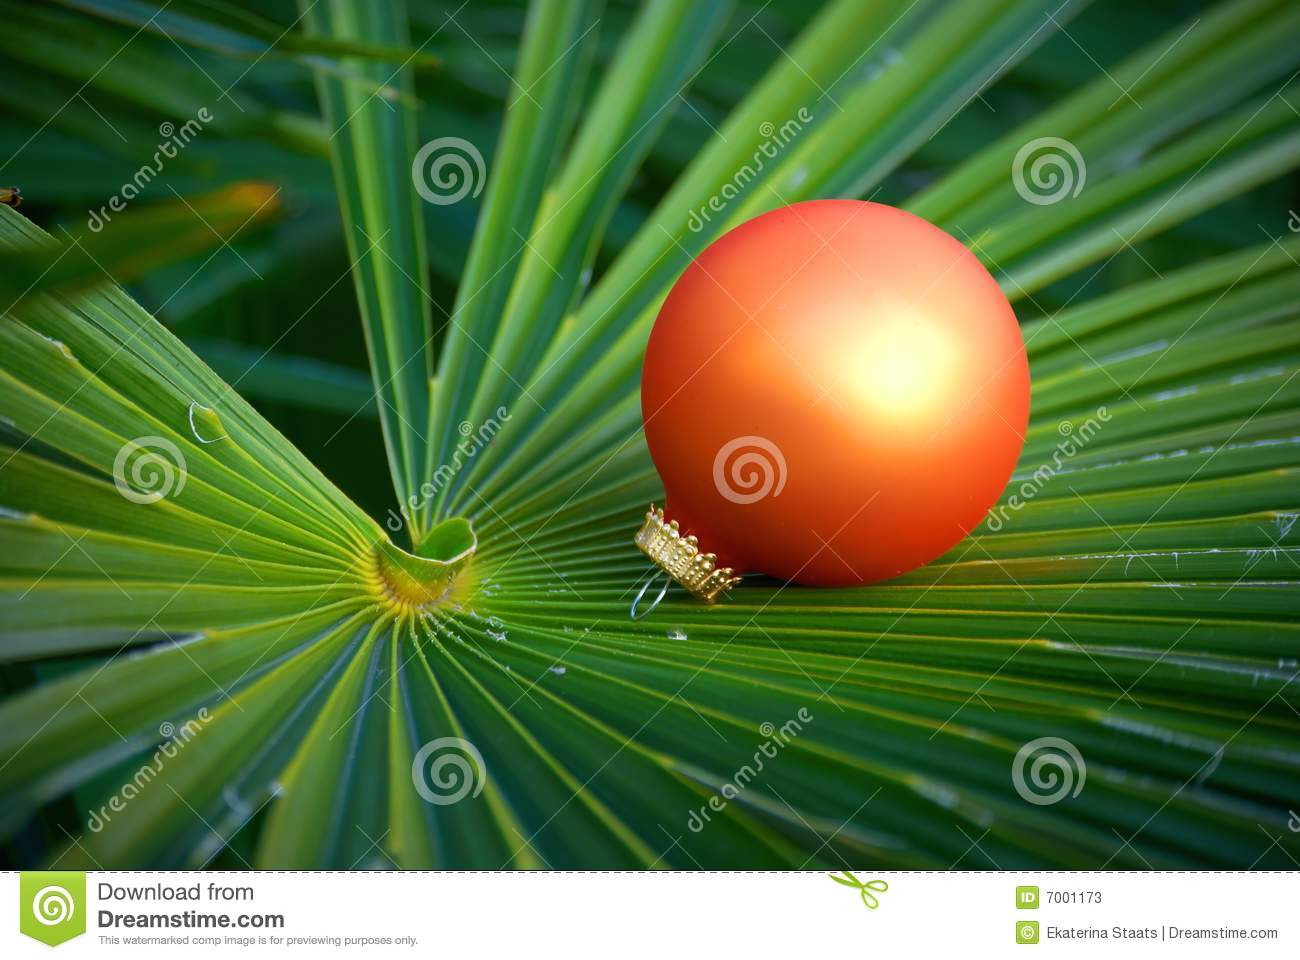 Exotic Christmas Stock Photos Image 7001173